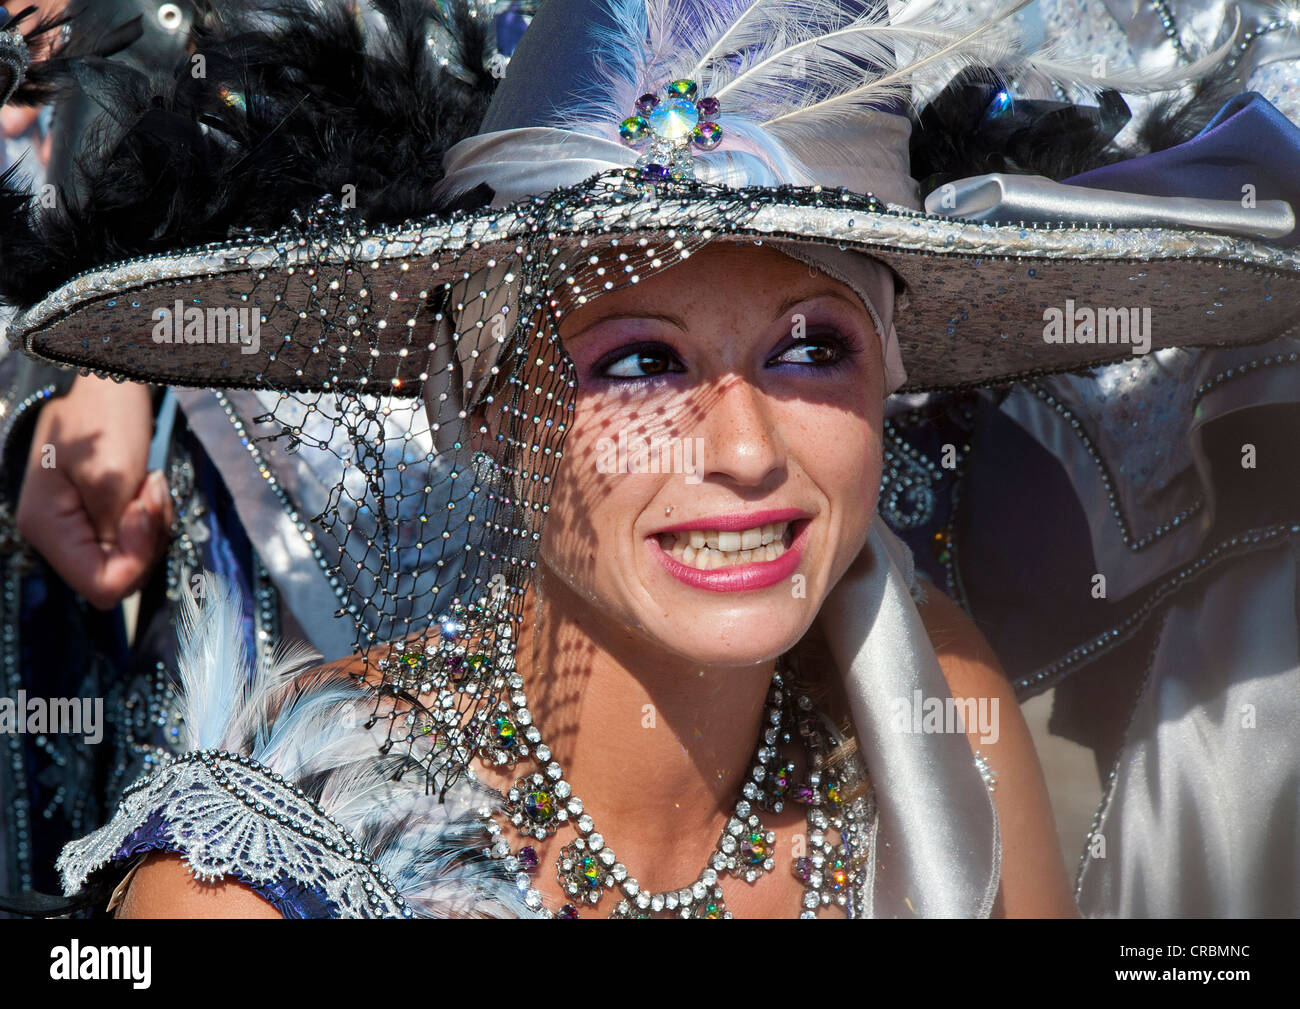 Woman in Traditional Moors Costume at the Moors and Christians Fiesta in Mojacar, Almeria, Andalusia, Spain Stock Photo